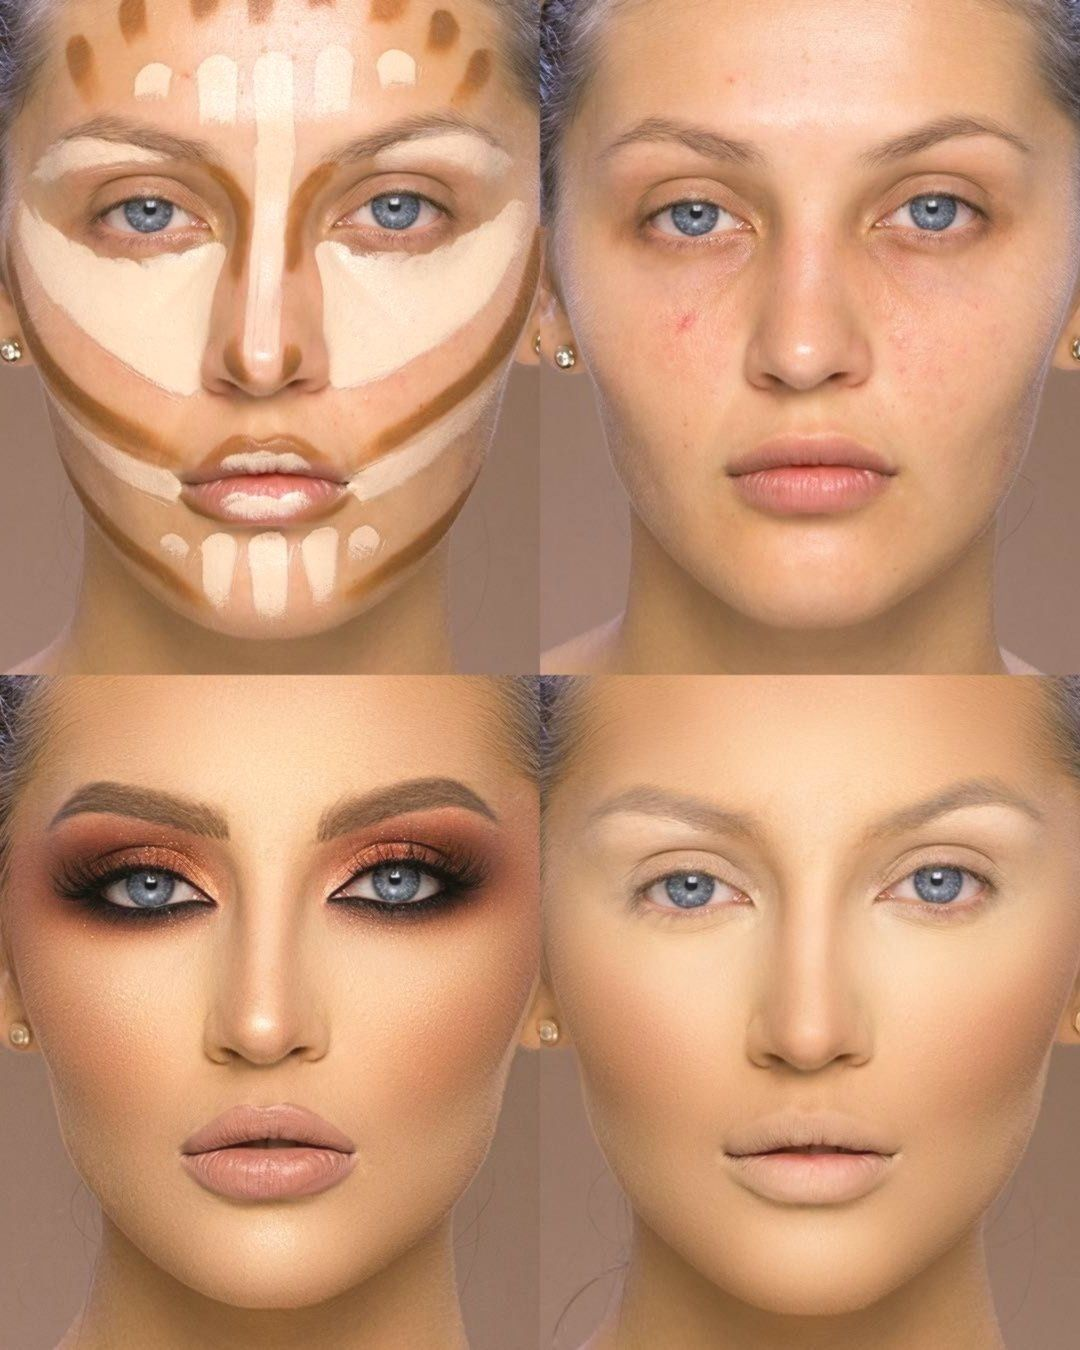 Makeup Tutorial For Beginners Learn How To Apply Makeup Like A Pro With This Collection Of Makeup Tut Makeup For Beginners Makeup Tutorial For Beginners Makeup